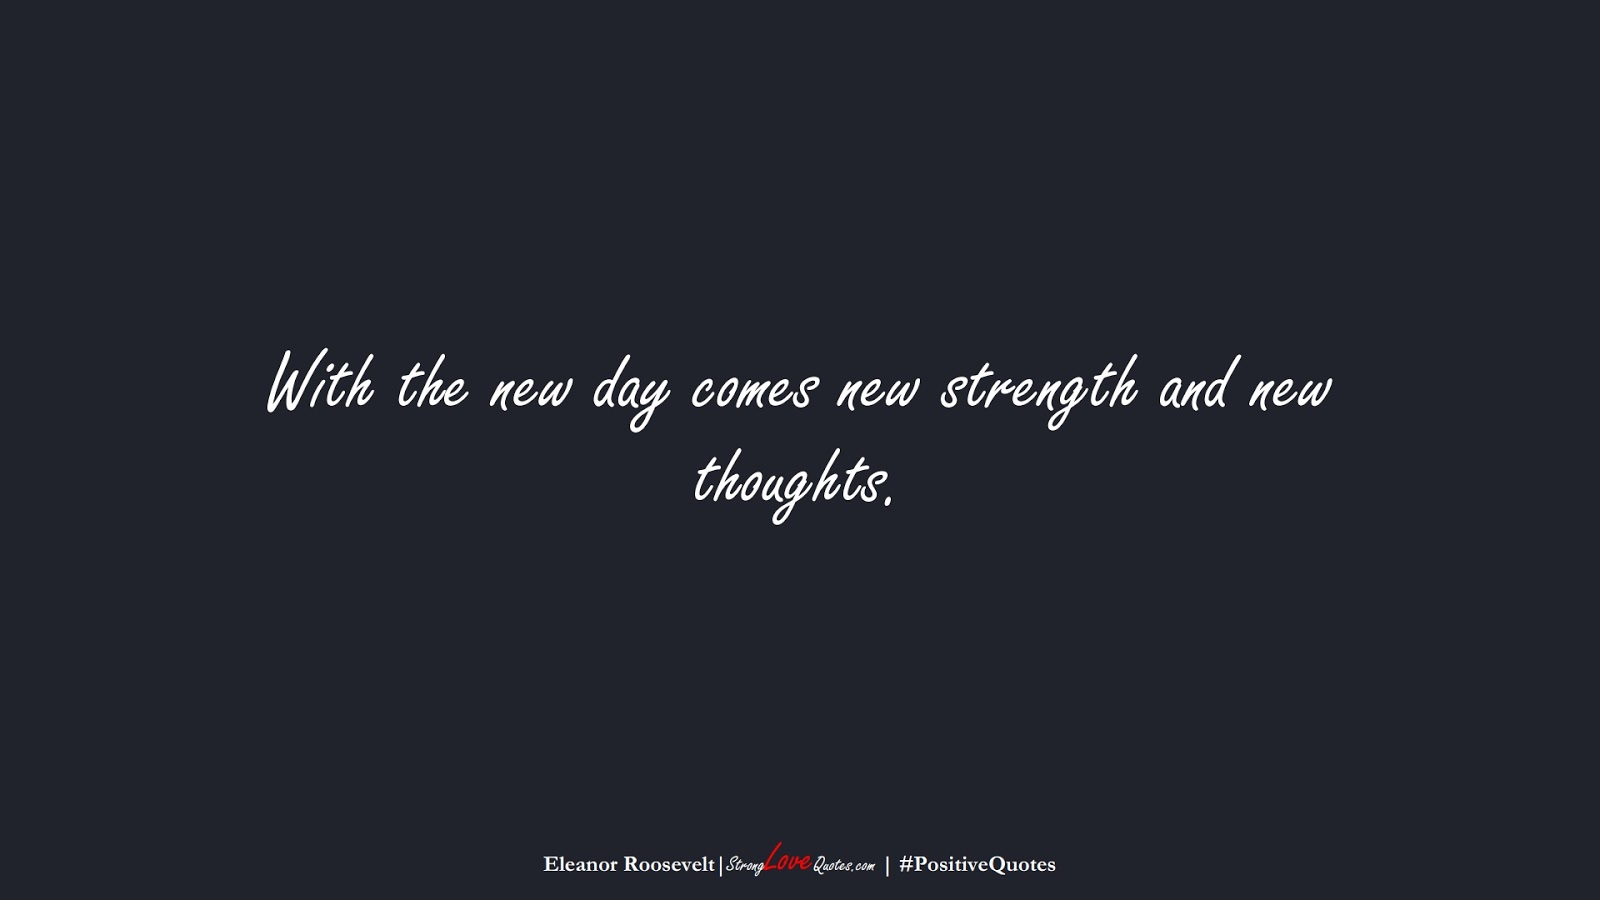 With the new day comes new strength and new thoughts. (Eleanor Roosevelt);  #PositiveQuotes